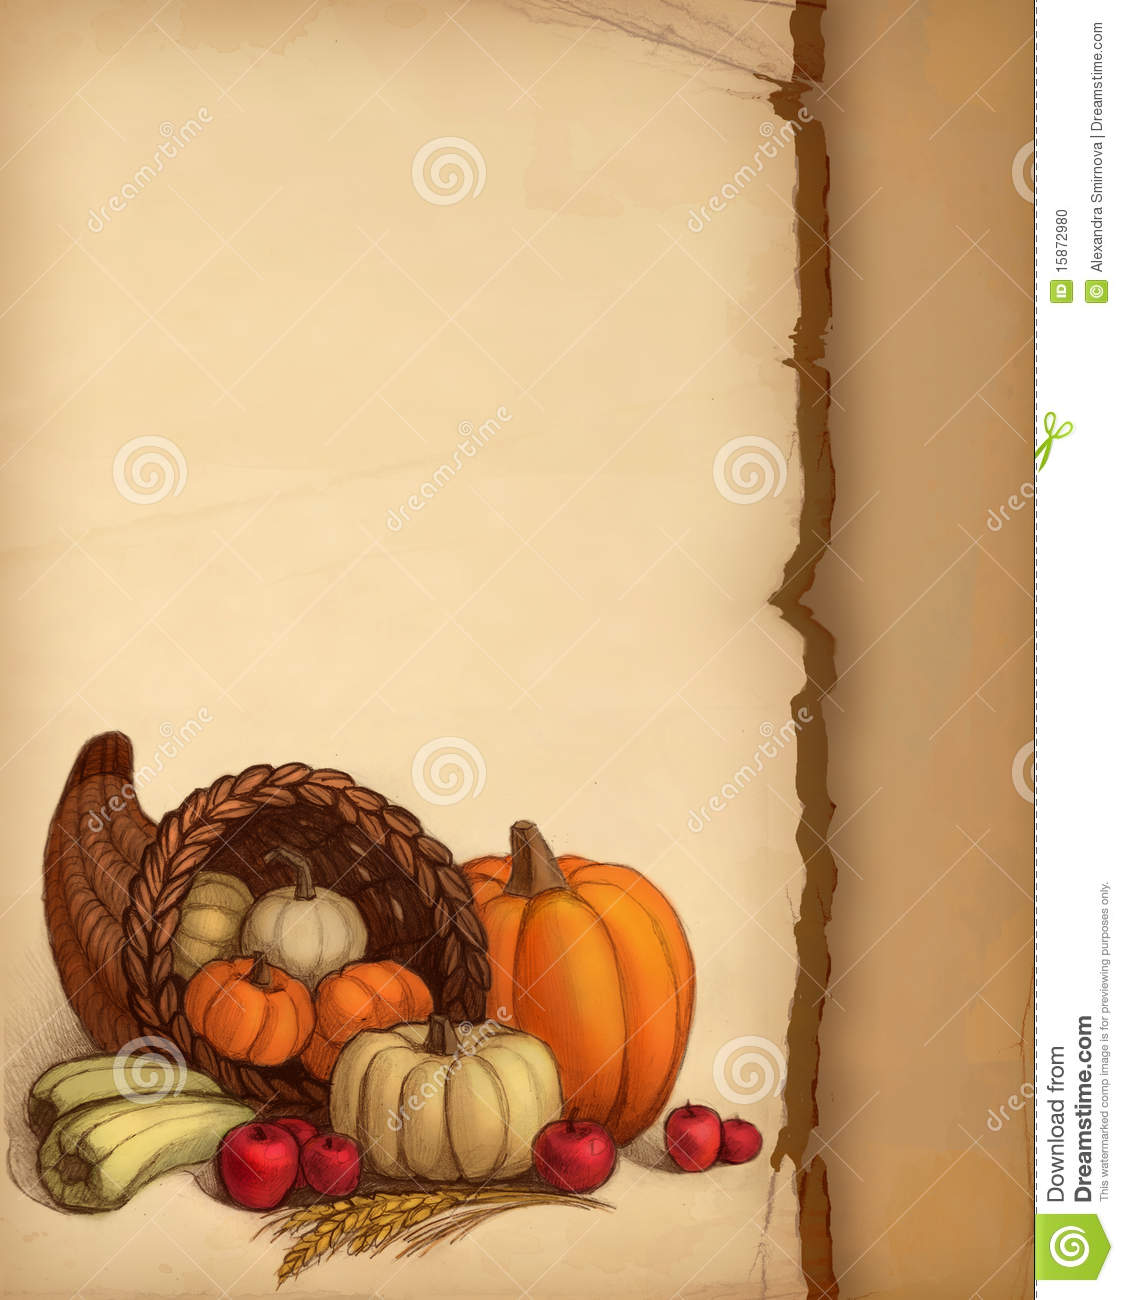 Thanksgiving dinner table family - Thanksgiving Background Stock Photo Image 15872980